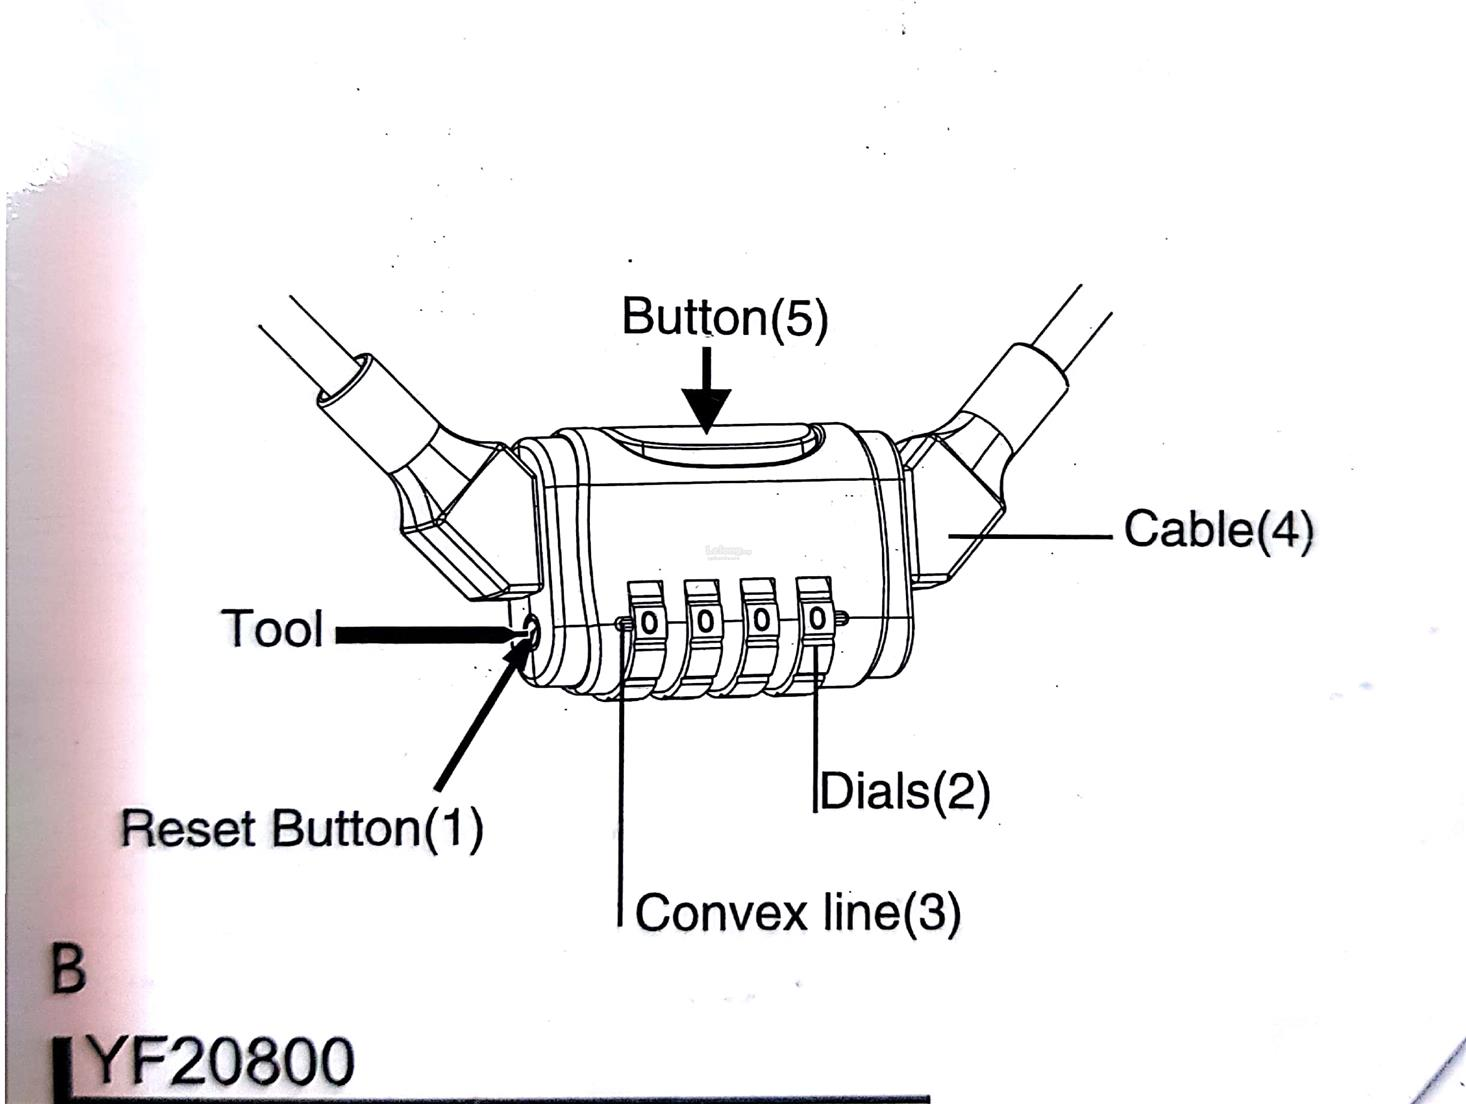 Cable Lock Diagram Trusted Wiring Mortise Stelar For Motor Bicycl End 6 30 2019 59 Pm Schlage Parts